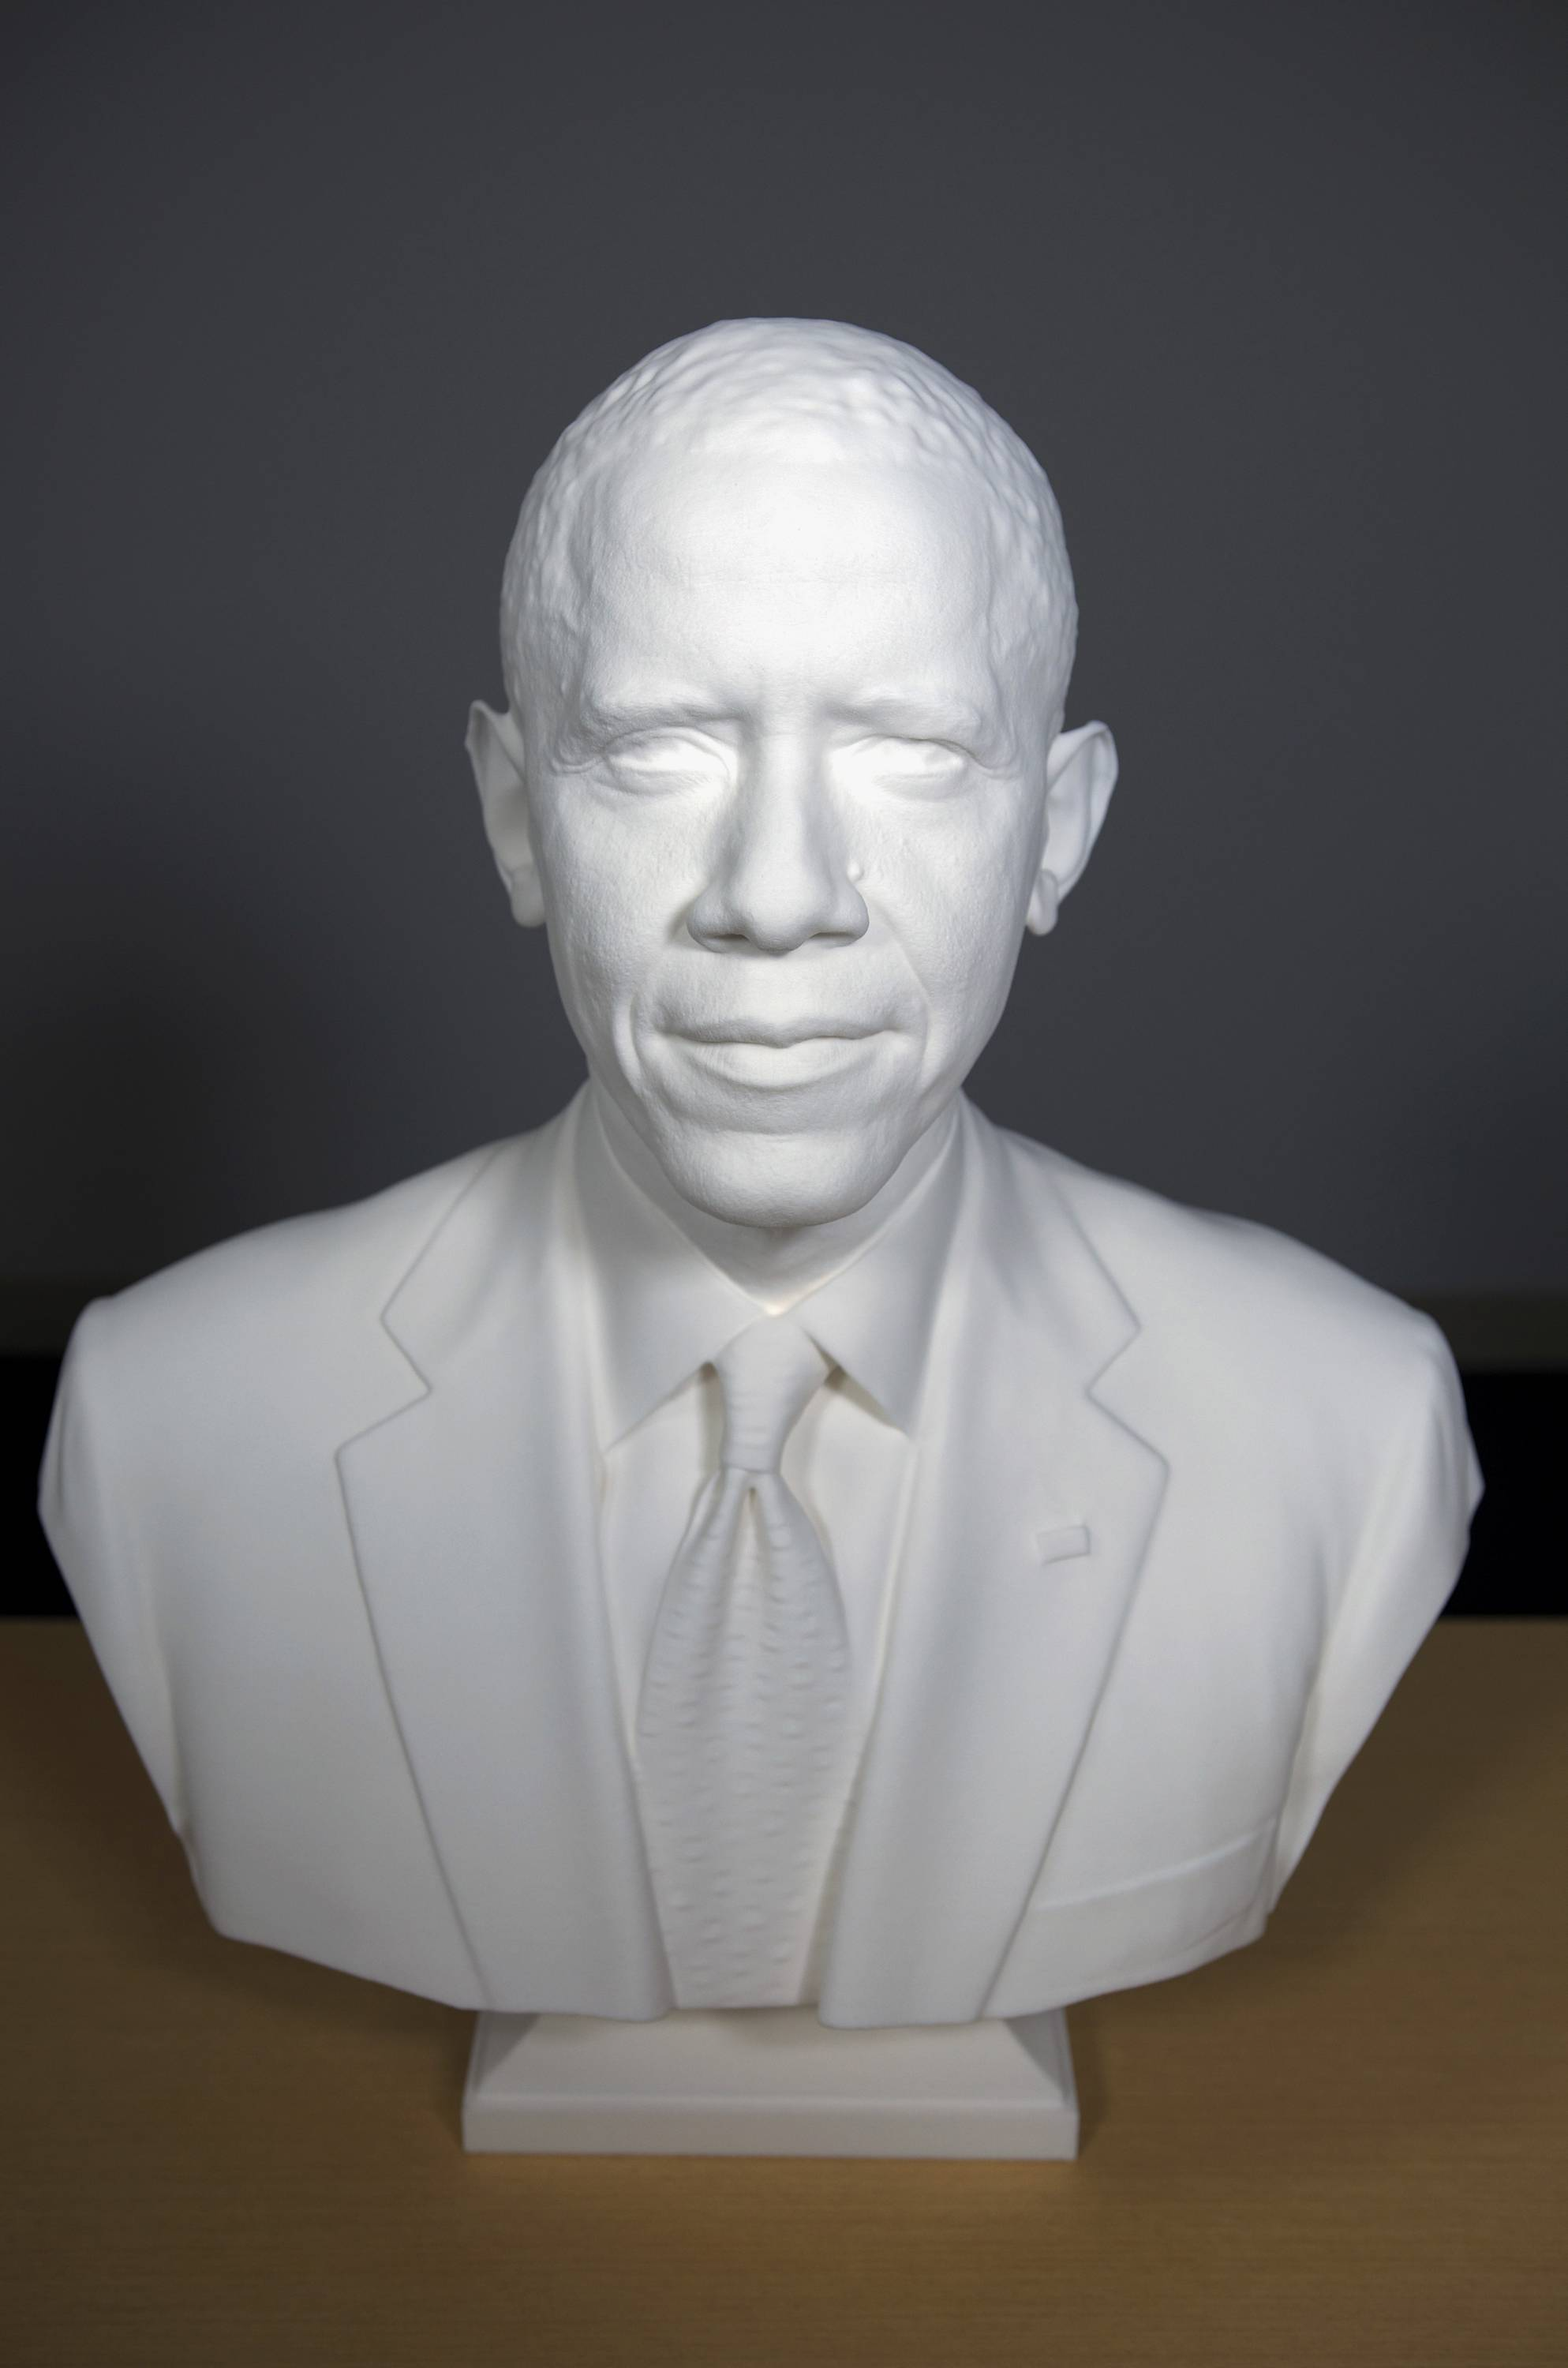 The first presidential portrait created from 3-D scan data.